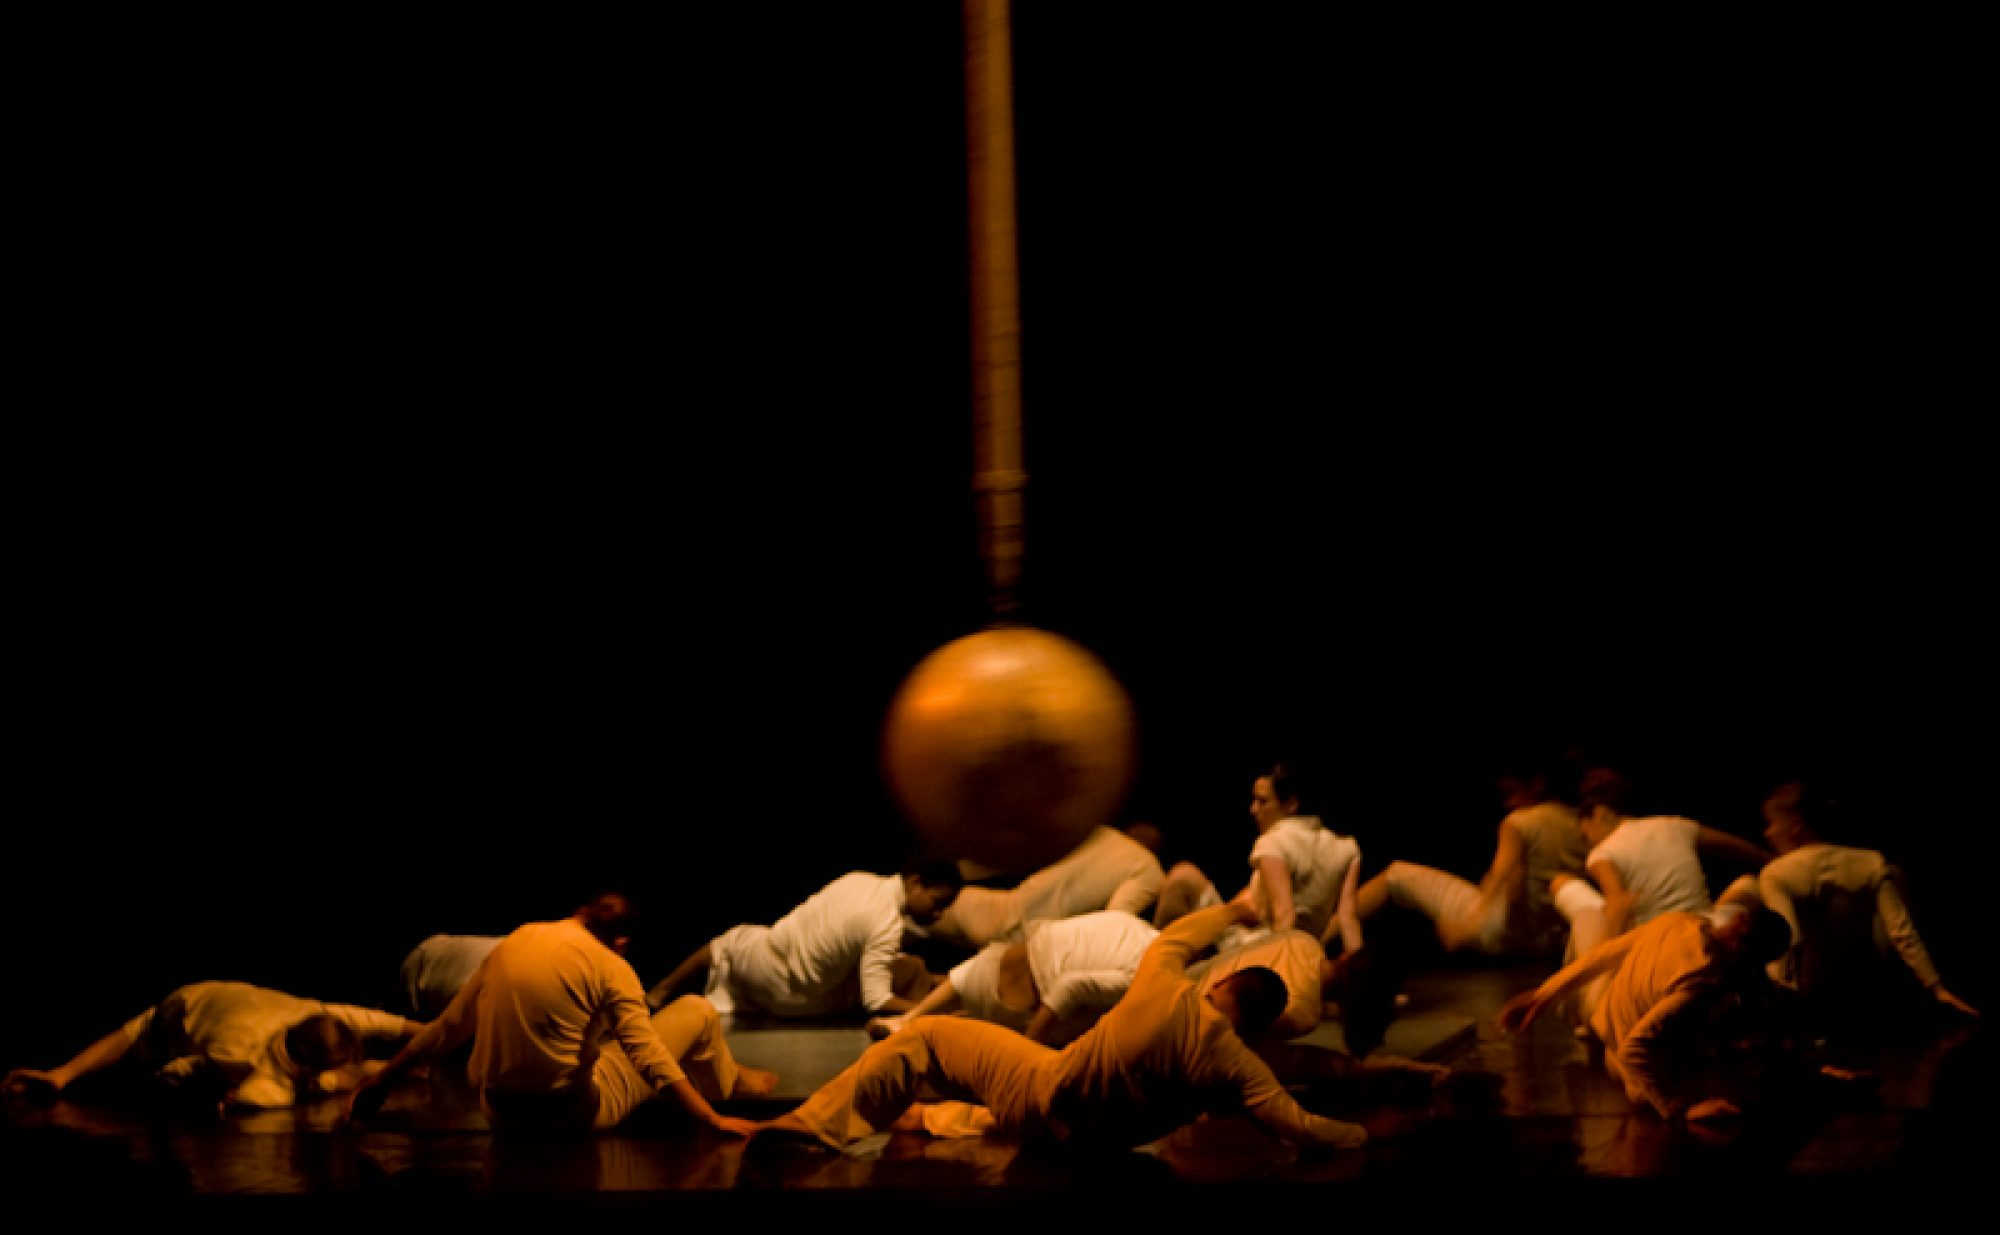 Cardell Dance Theater